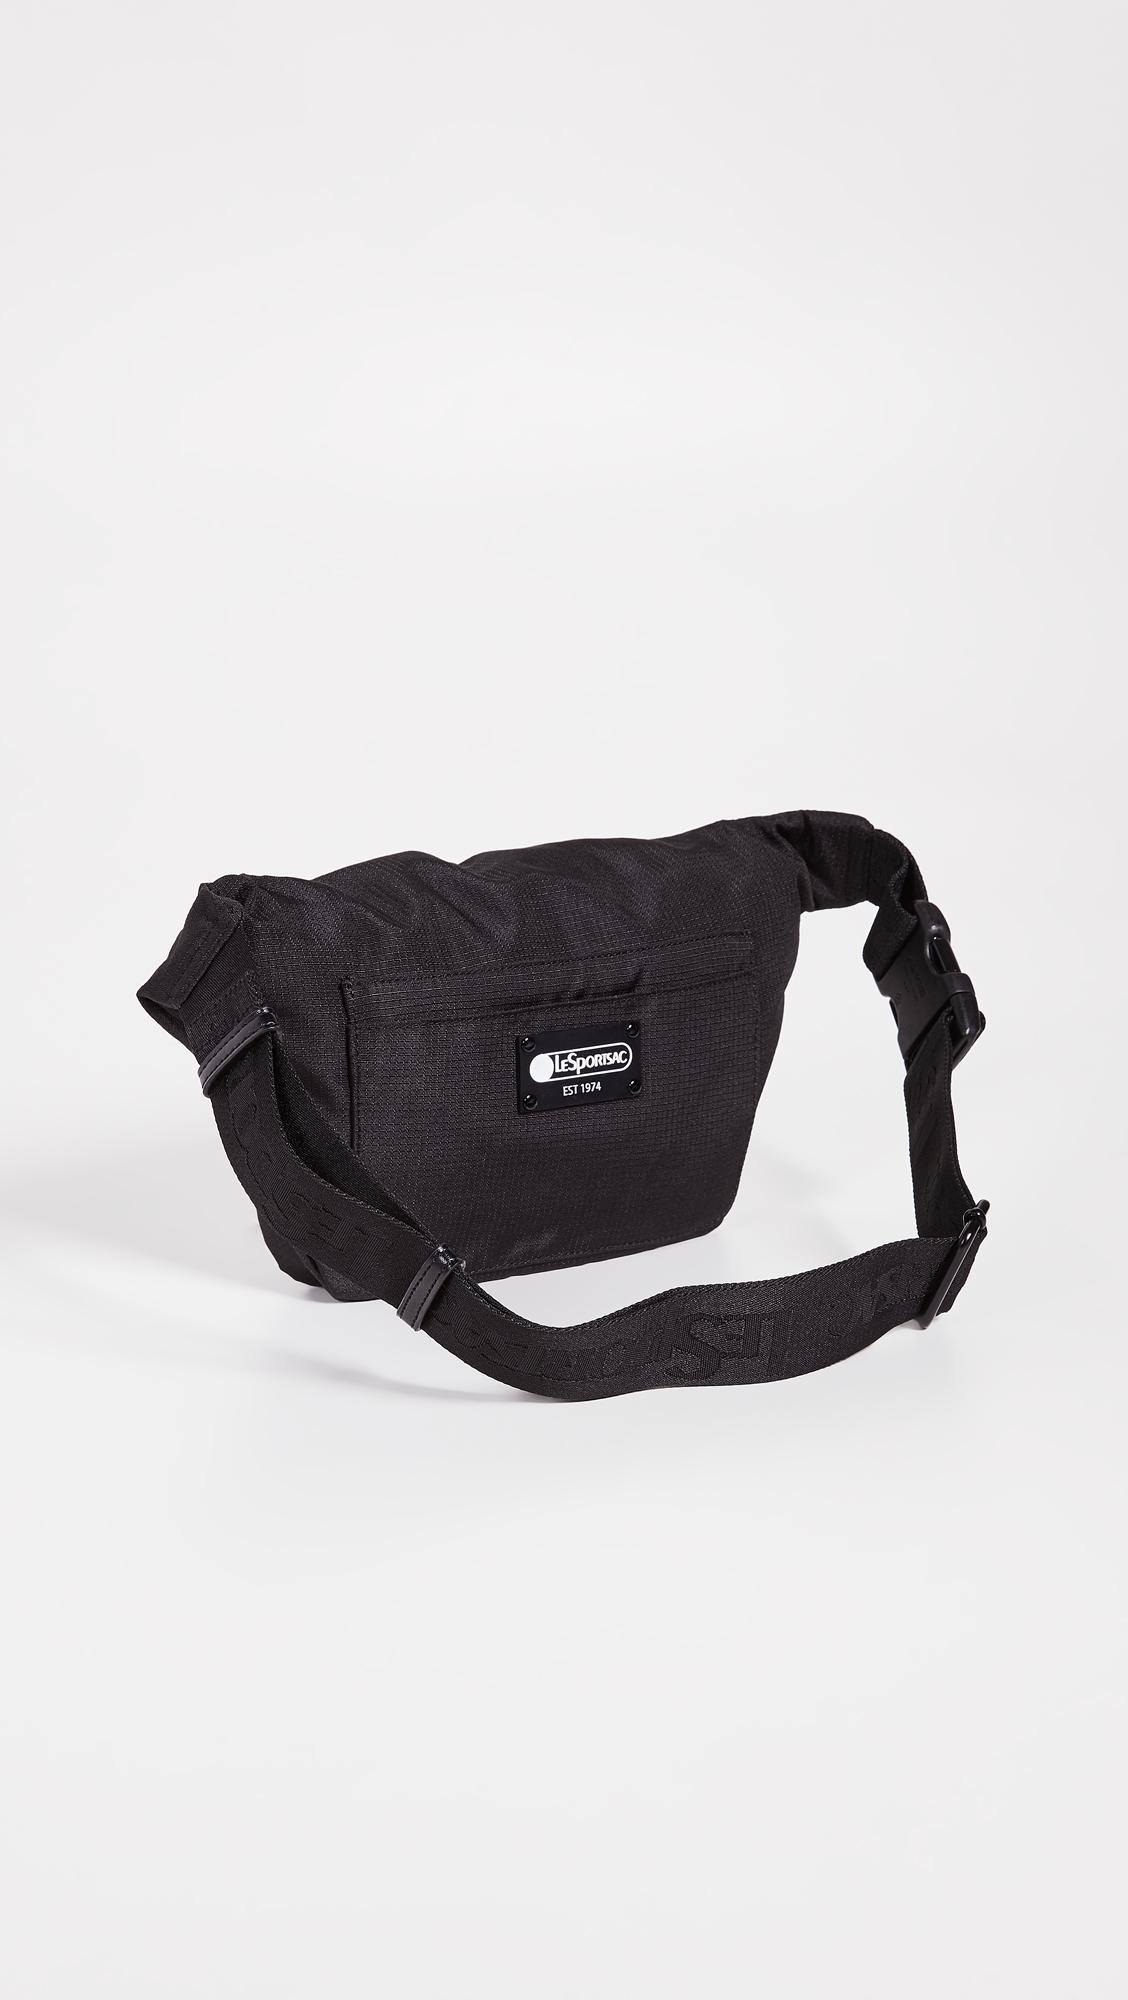 Lesportsac Black Montana Belt Bag Lyst View Fullscreen